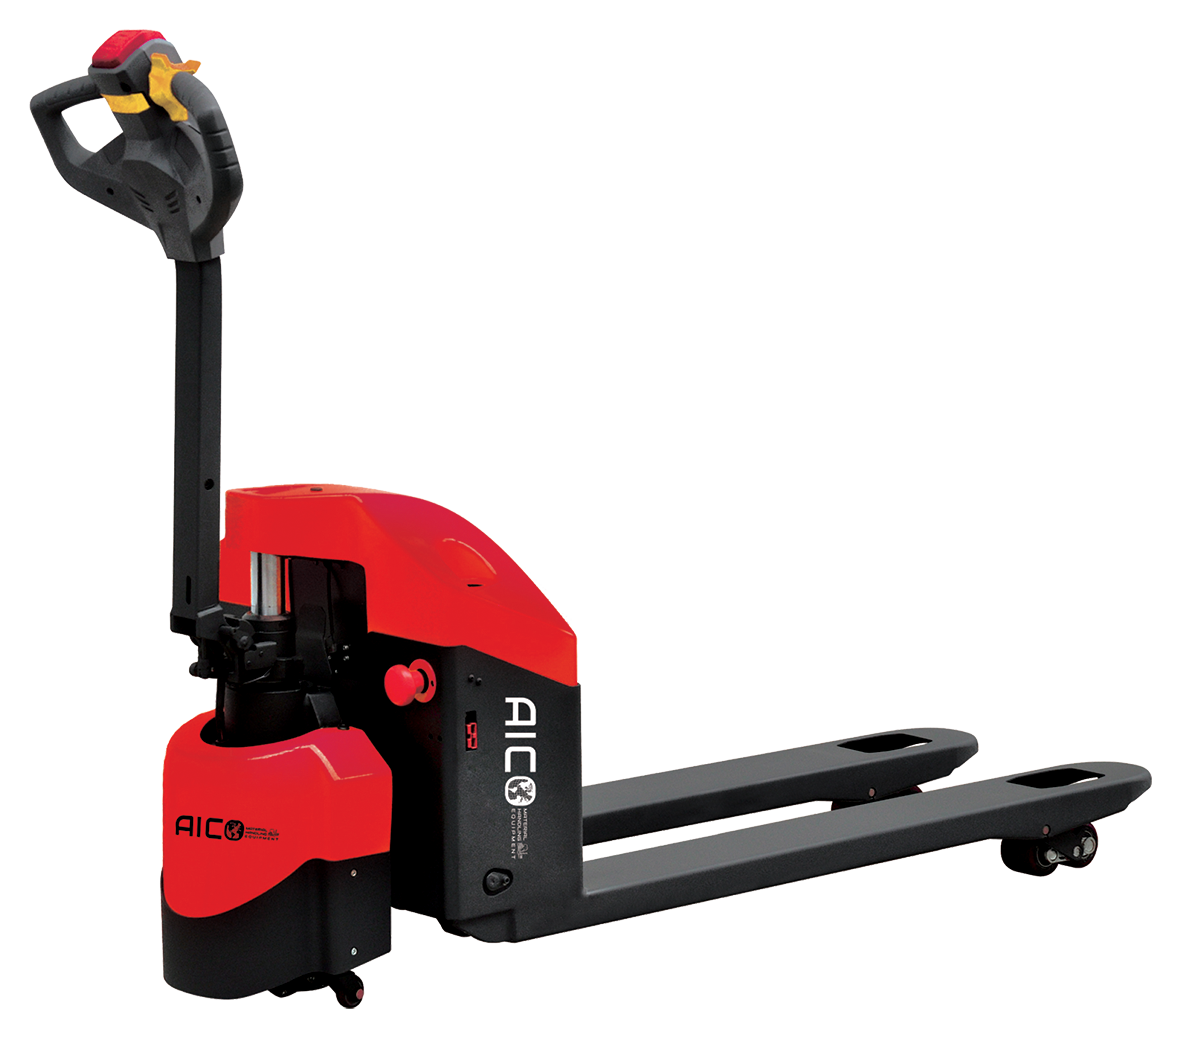 Electric Pallet Truck_1.5_AICO